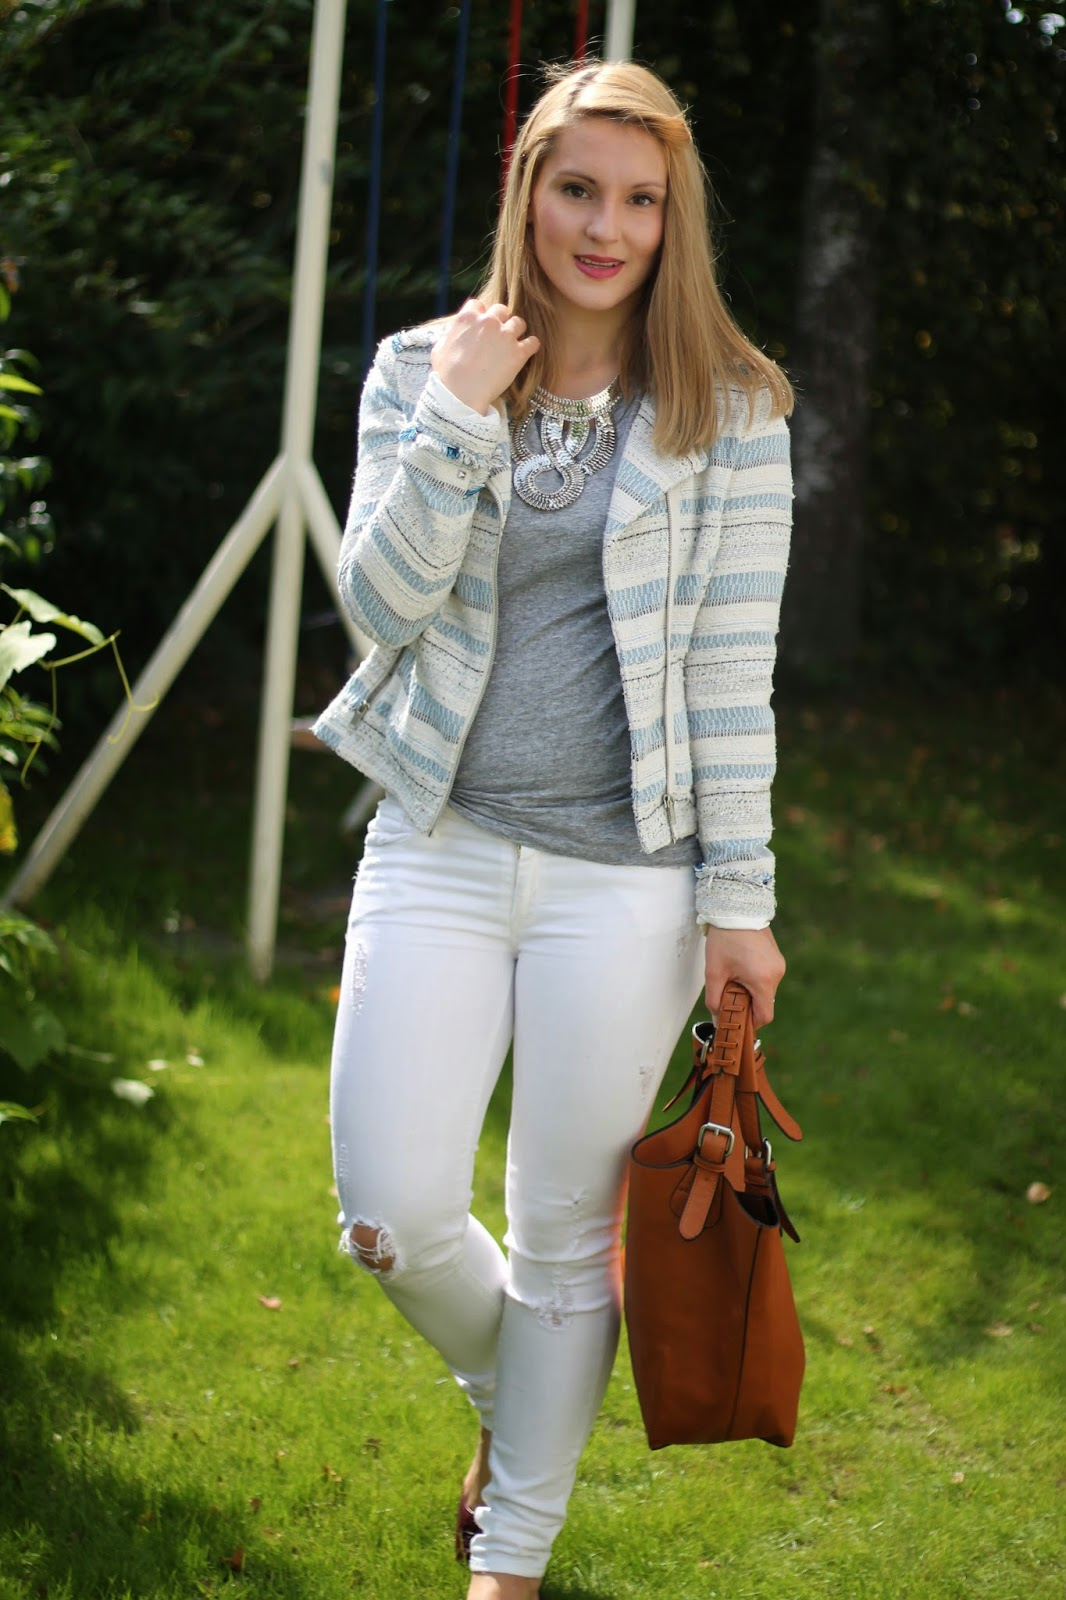 Fashionblogger Austria / Österreich / Deutsch / German / Kärnten / Carinthia / Klagenfurt / Köttmannsdorf / Spring Look / Classy / Edgy / Autumn / Autumn Style 2014 / Autumn Look / Fashionista Look / Oasap /Statement Necklace / Zara Look a like Bag / Tory Burch Flats / C&A/ Mango White Jeans /